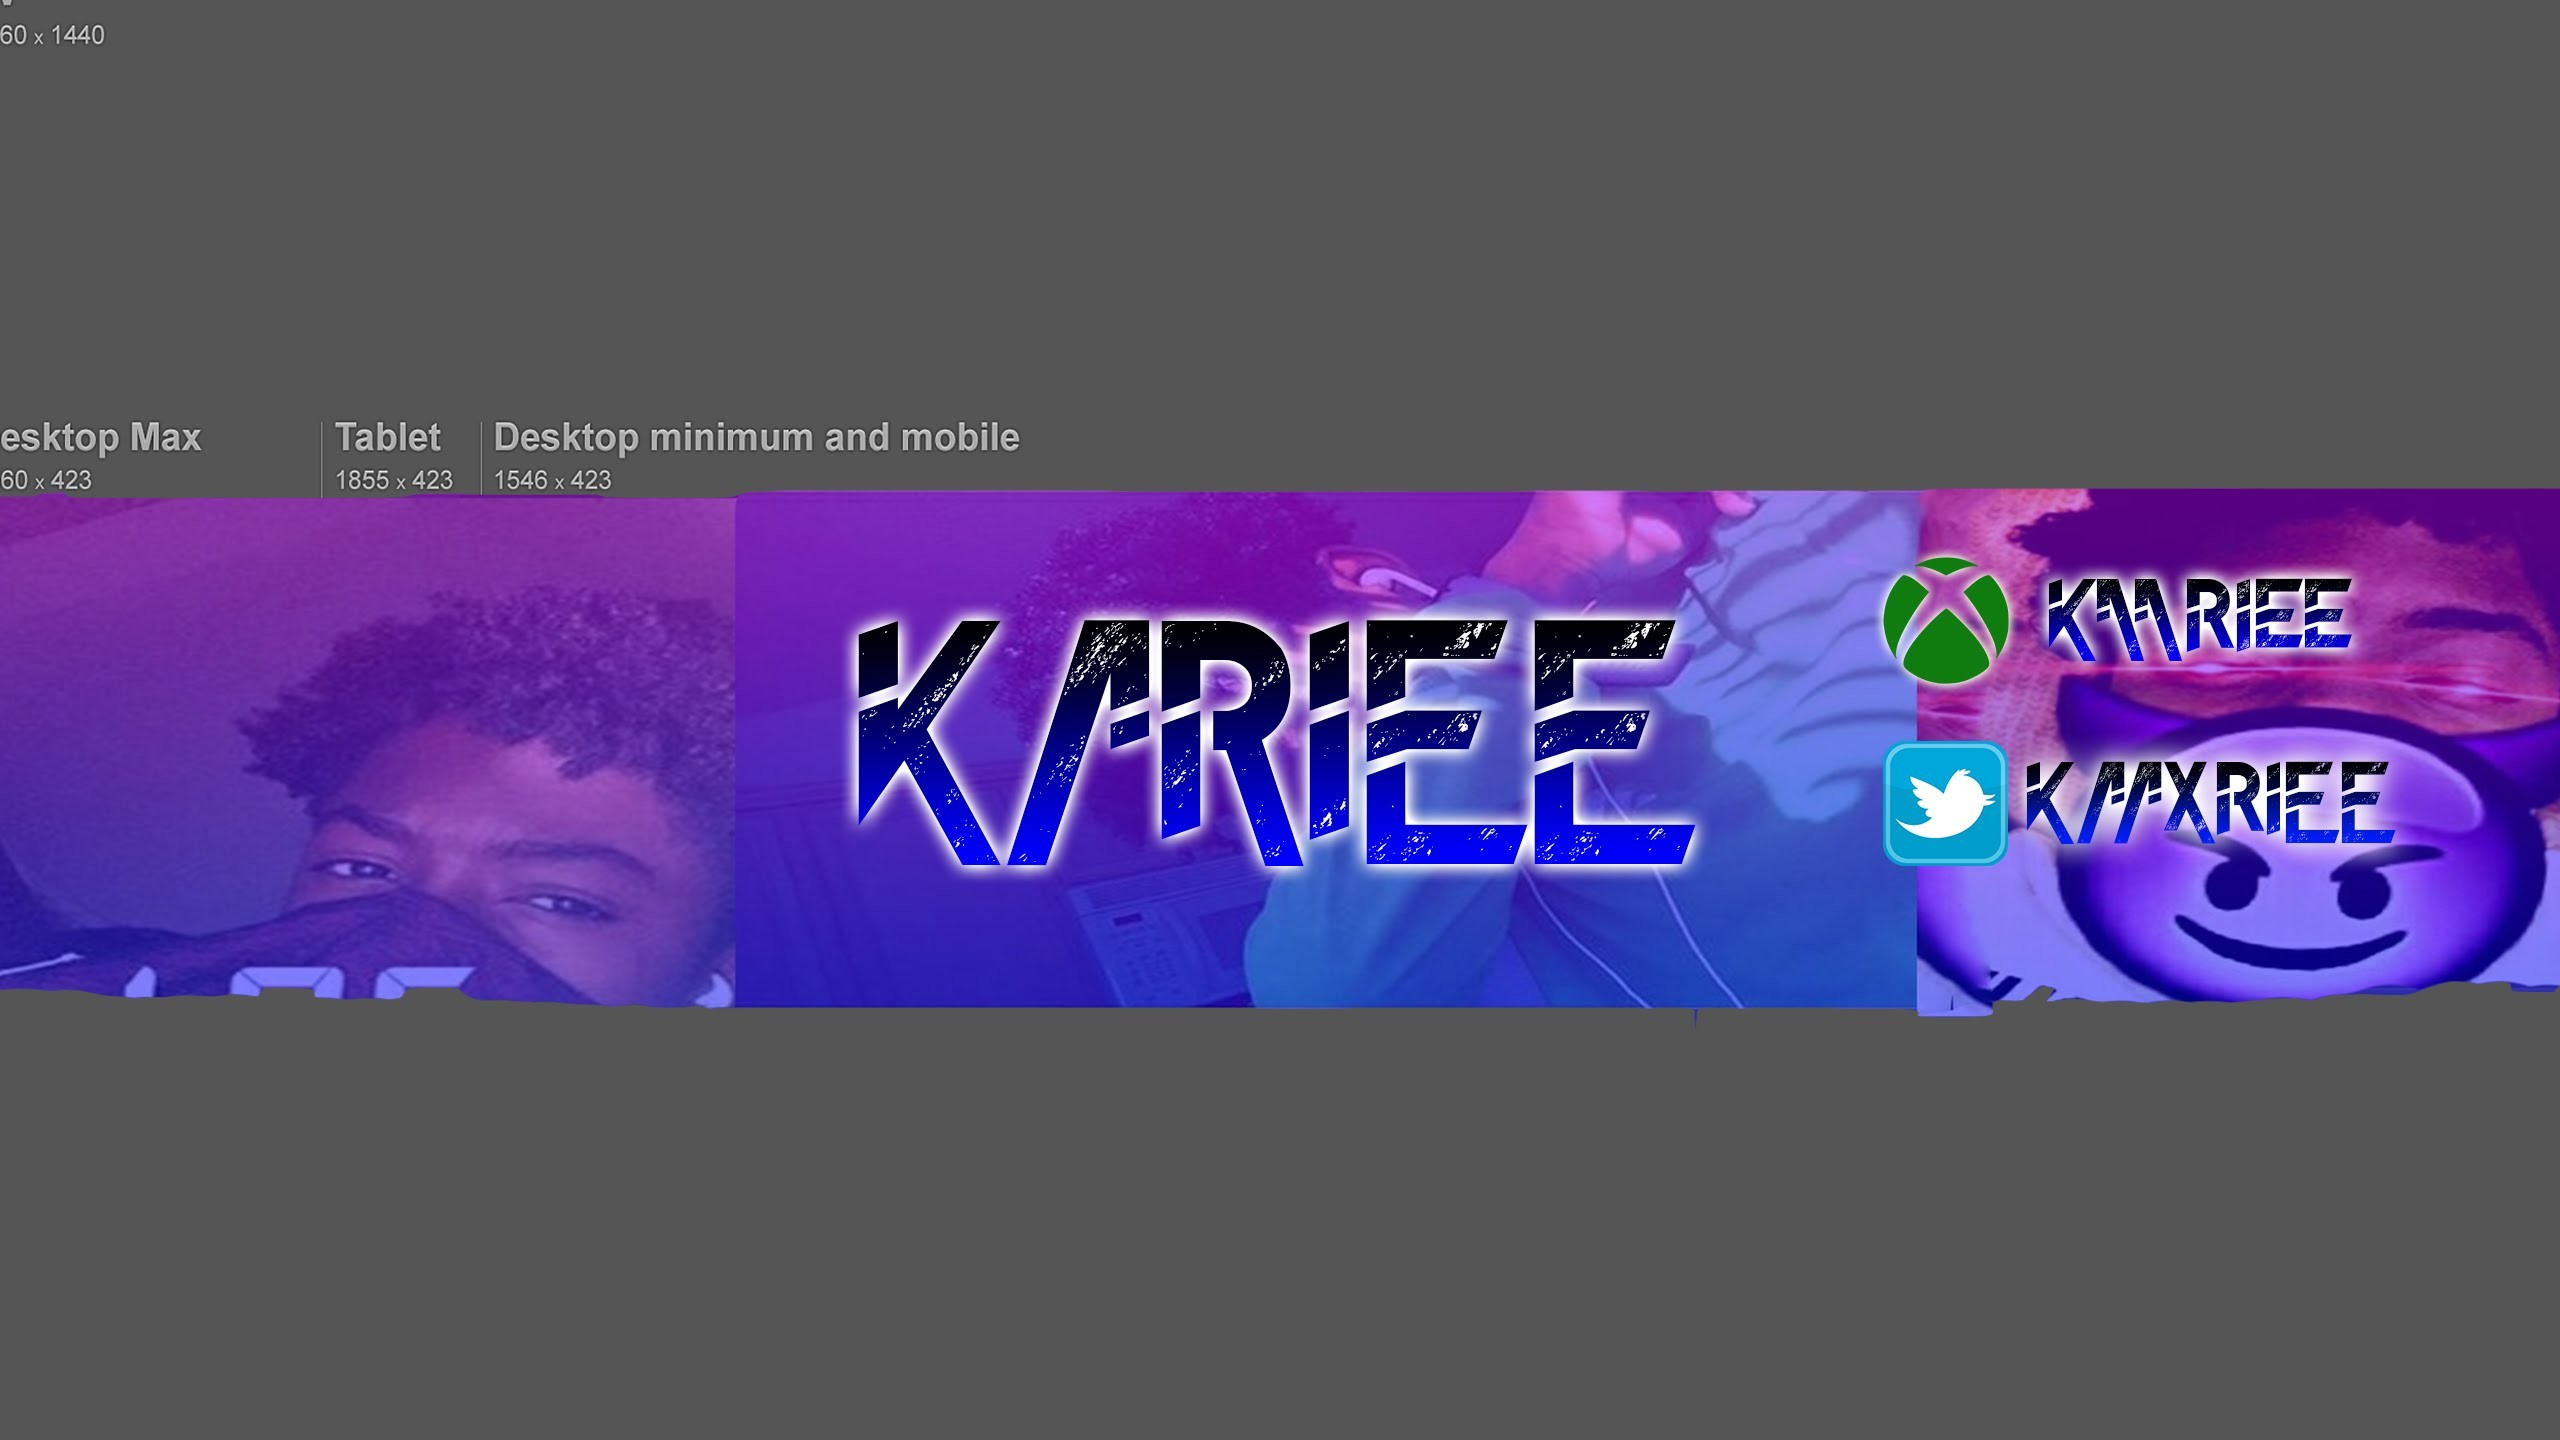  Photoshop Speed Art  Banner for Kariee #SUBSCRIBE